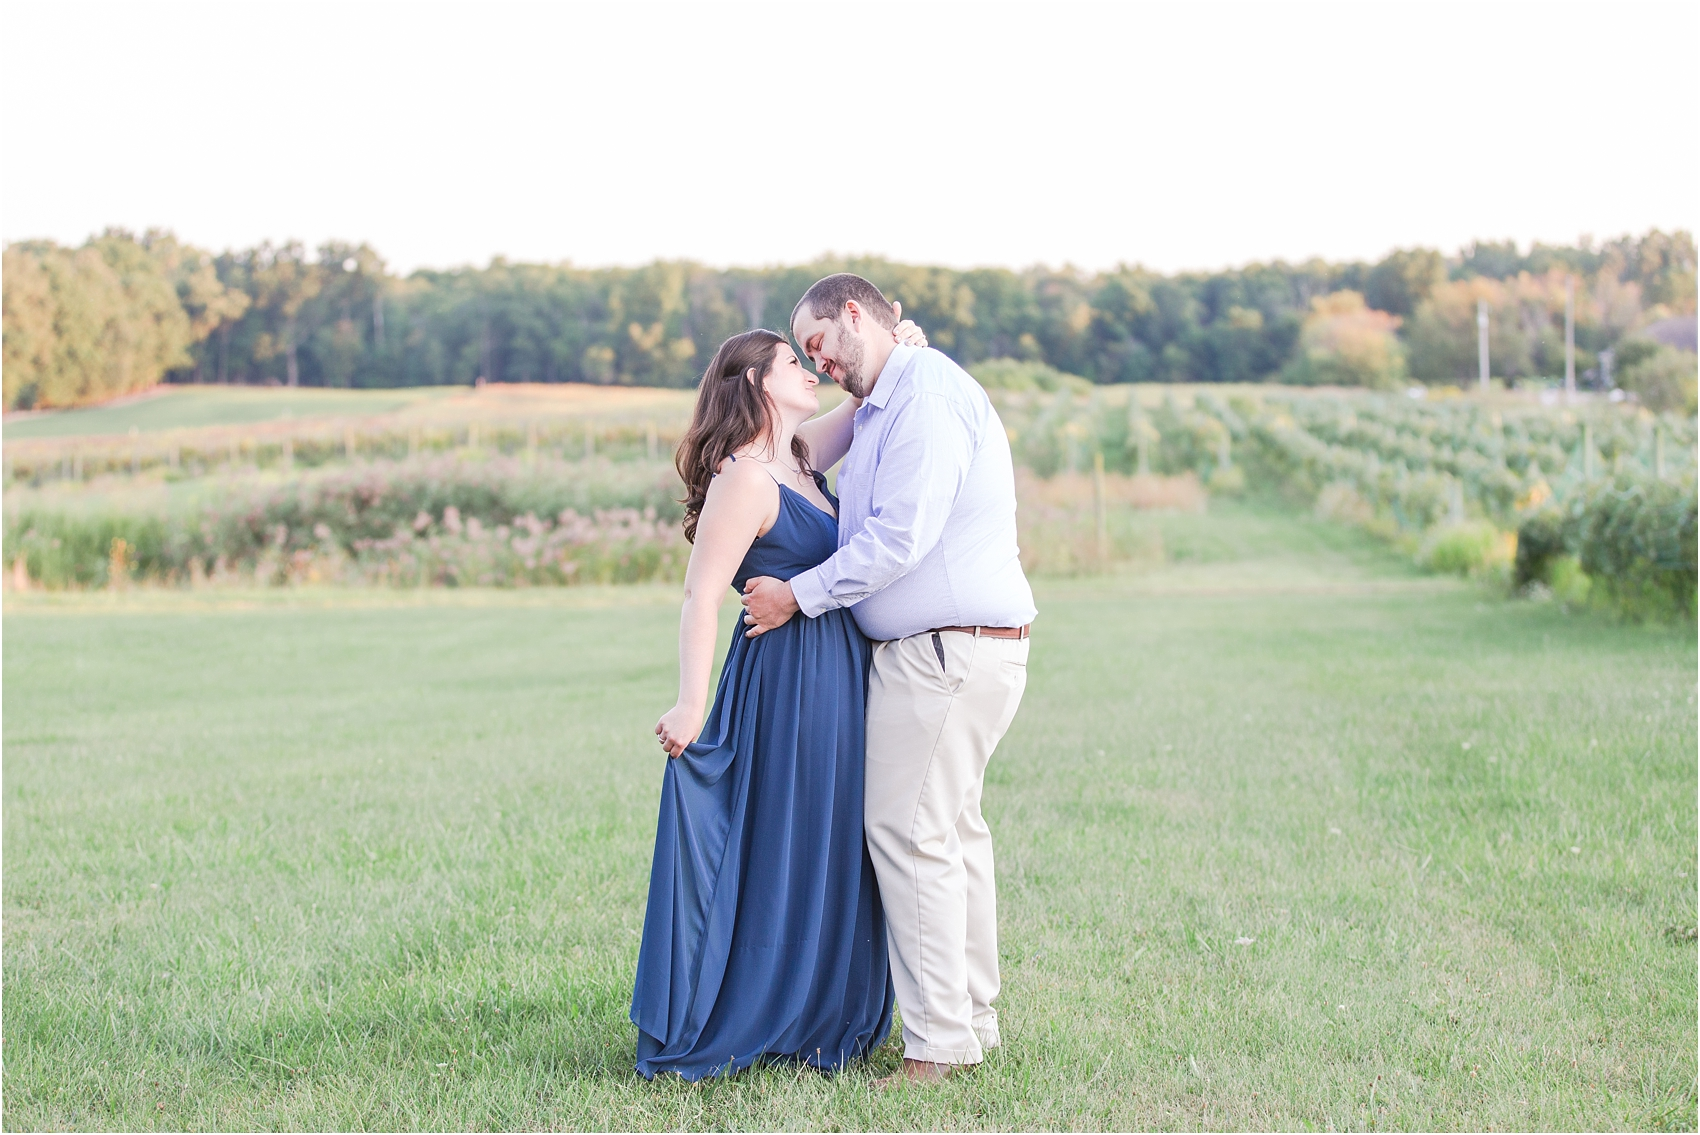 emotional-candid-romantic-engagement-photos-in-detroit-chicago-northern-michigan-by-courtney-carolyn-photography_0031.jpg